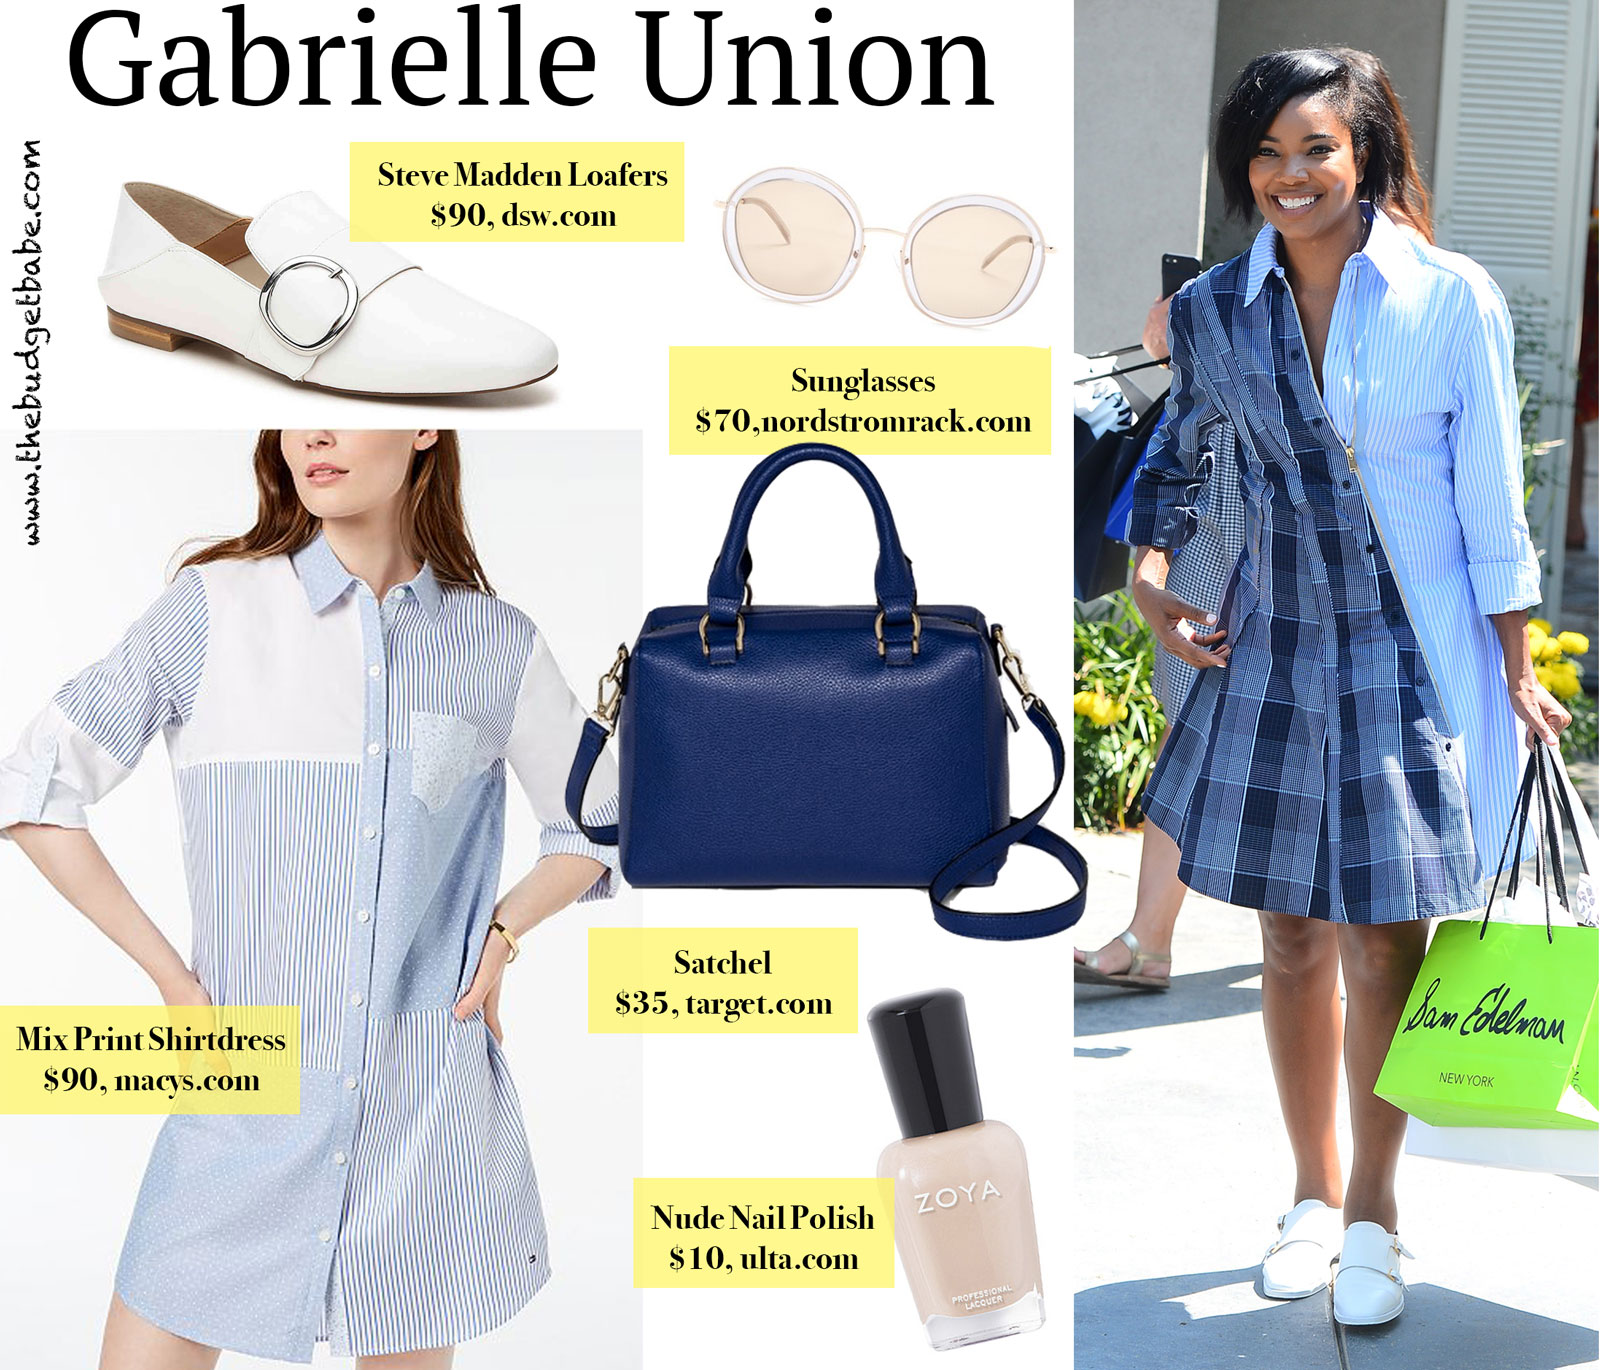 Gabrielle Union Stella McCartney Mix Media Dress Look for Less